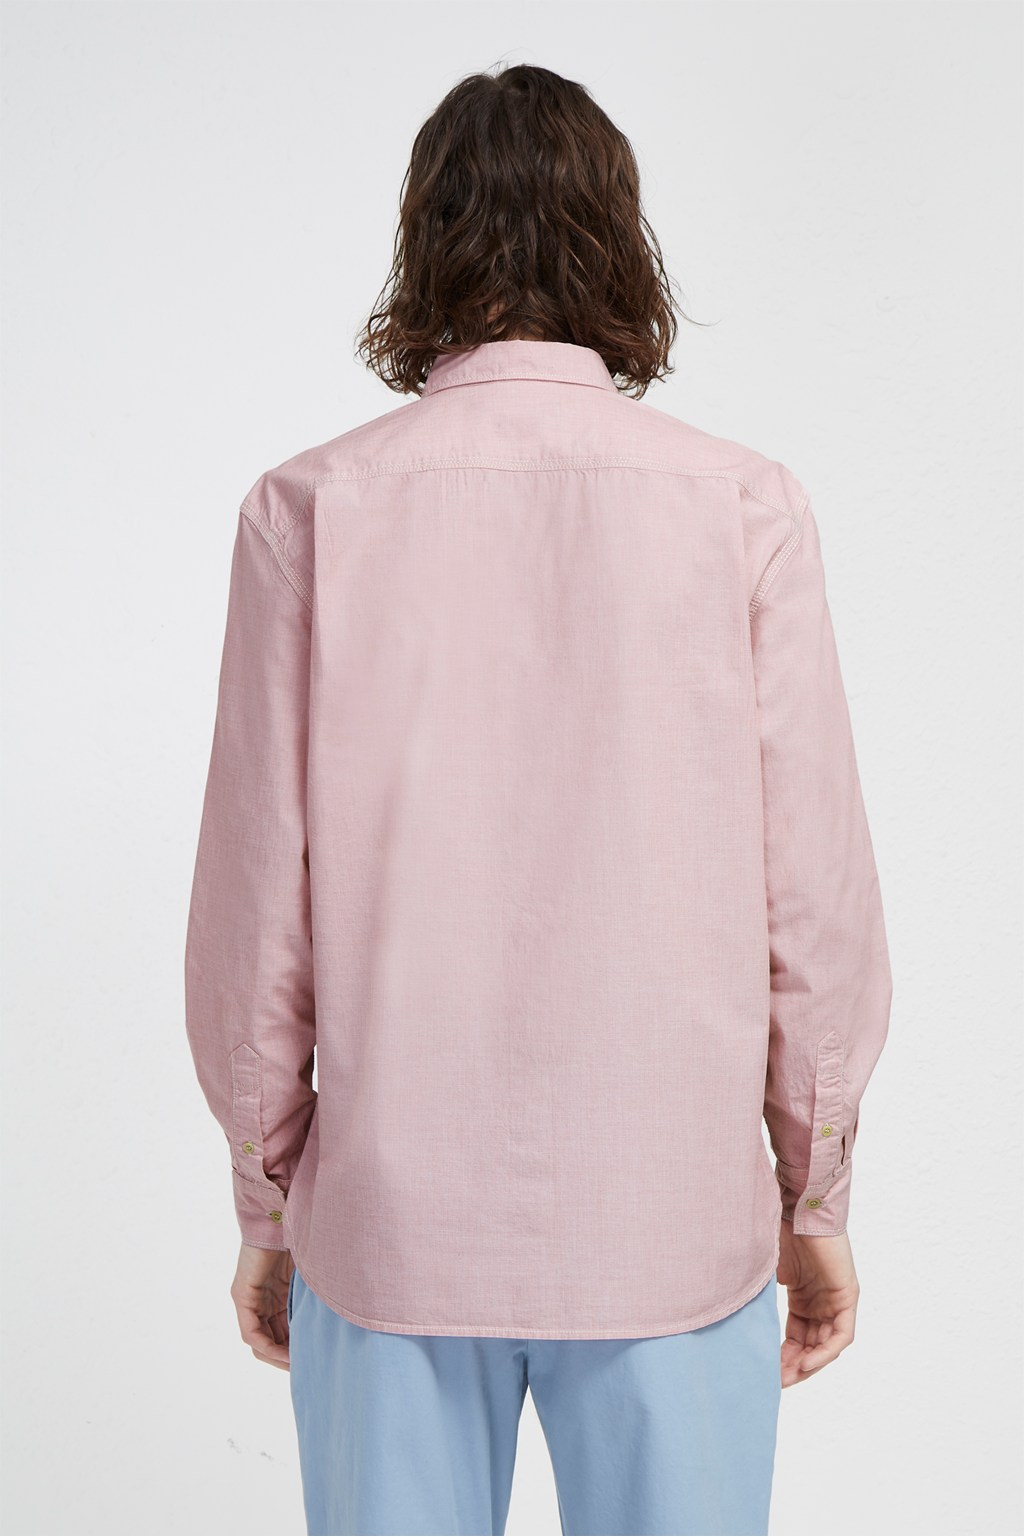 eb9c1fa6237bb loading images... loading images... loading images... End On End Loose  Collared Shirt